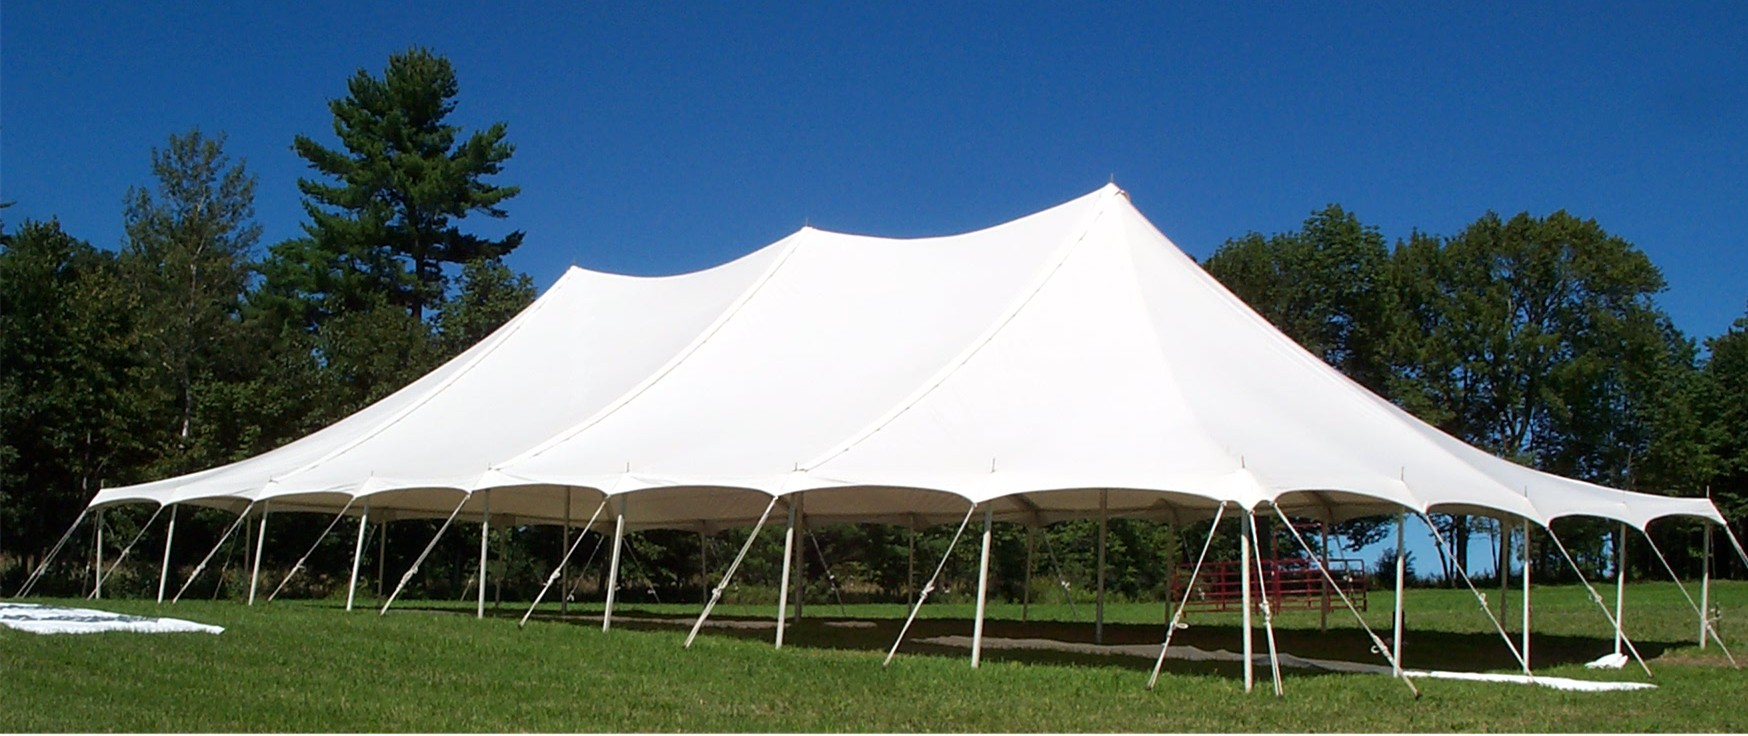 Action Party Tent Rentals 15 2704 Hou St Pahoa Hi 96778